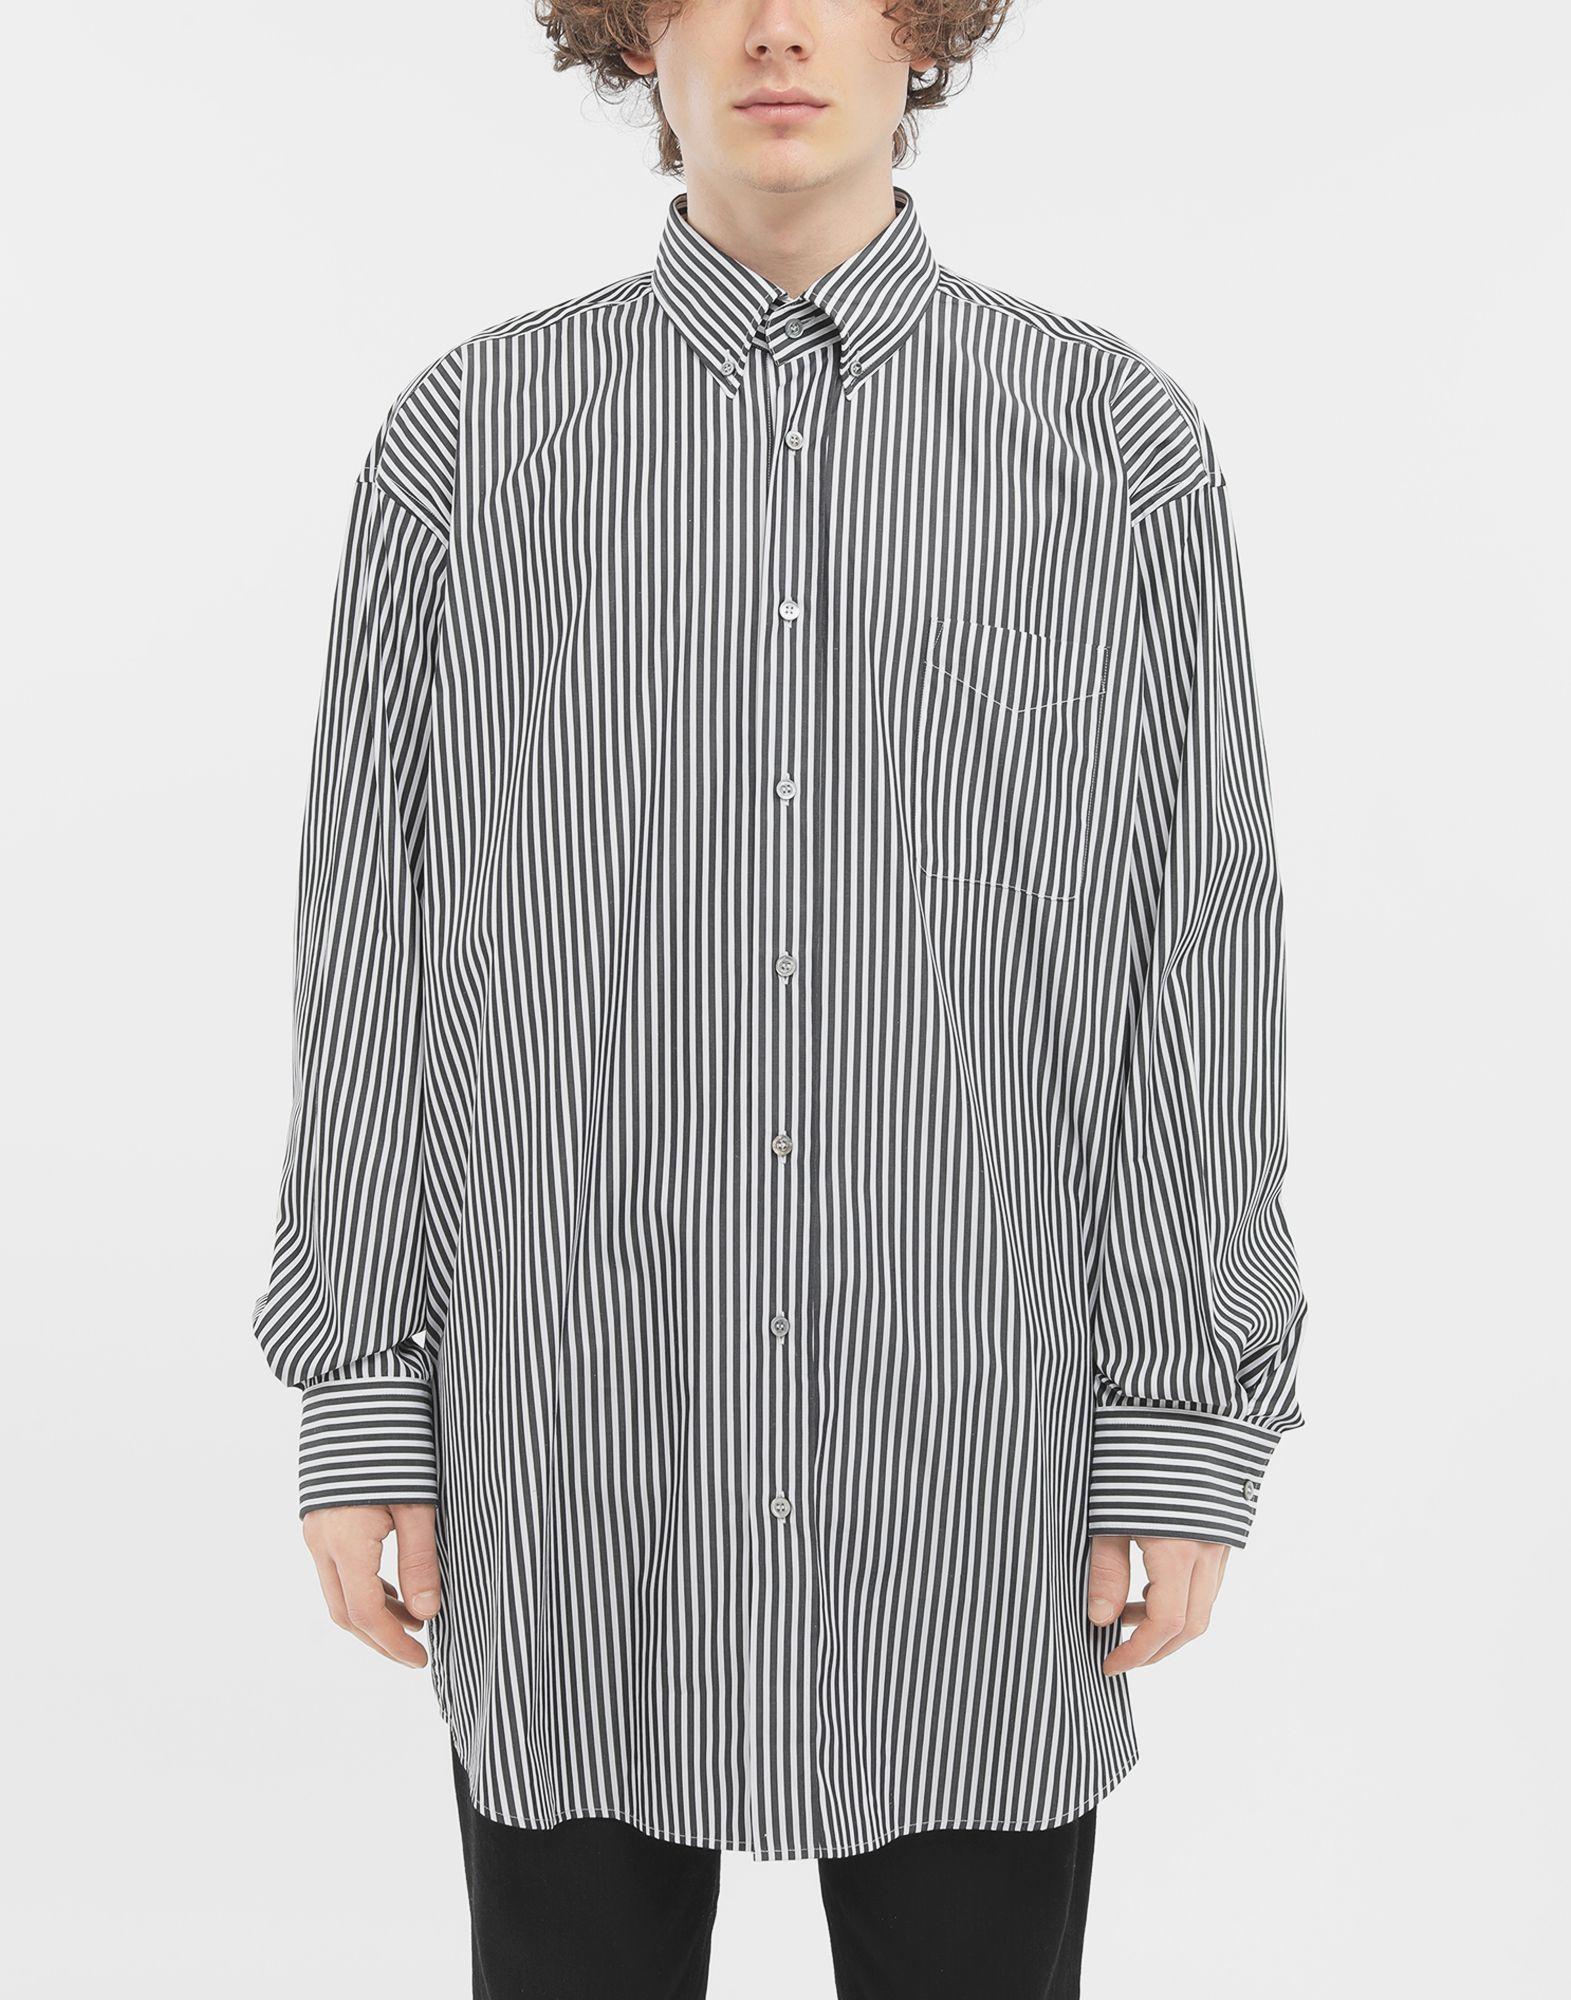 MAISON MARGIELA Striped shirt Long sleeve shirt Man r